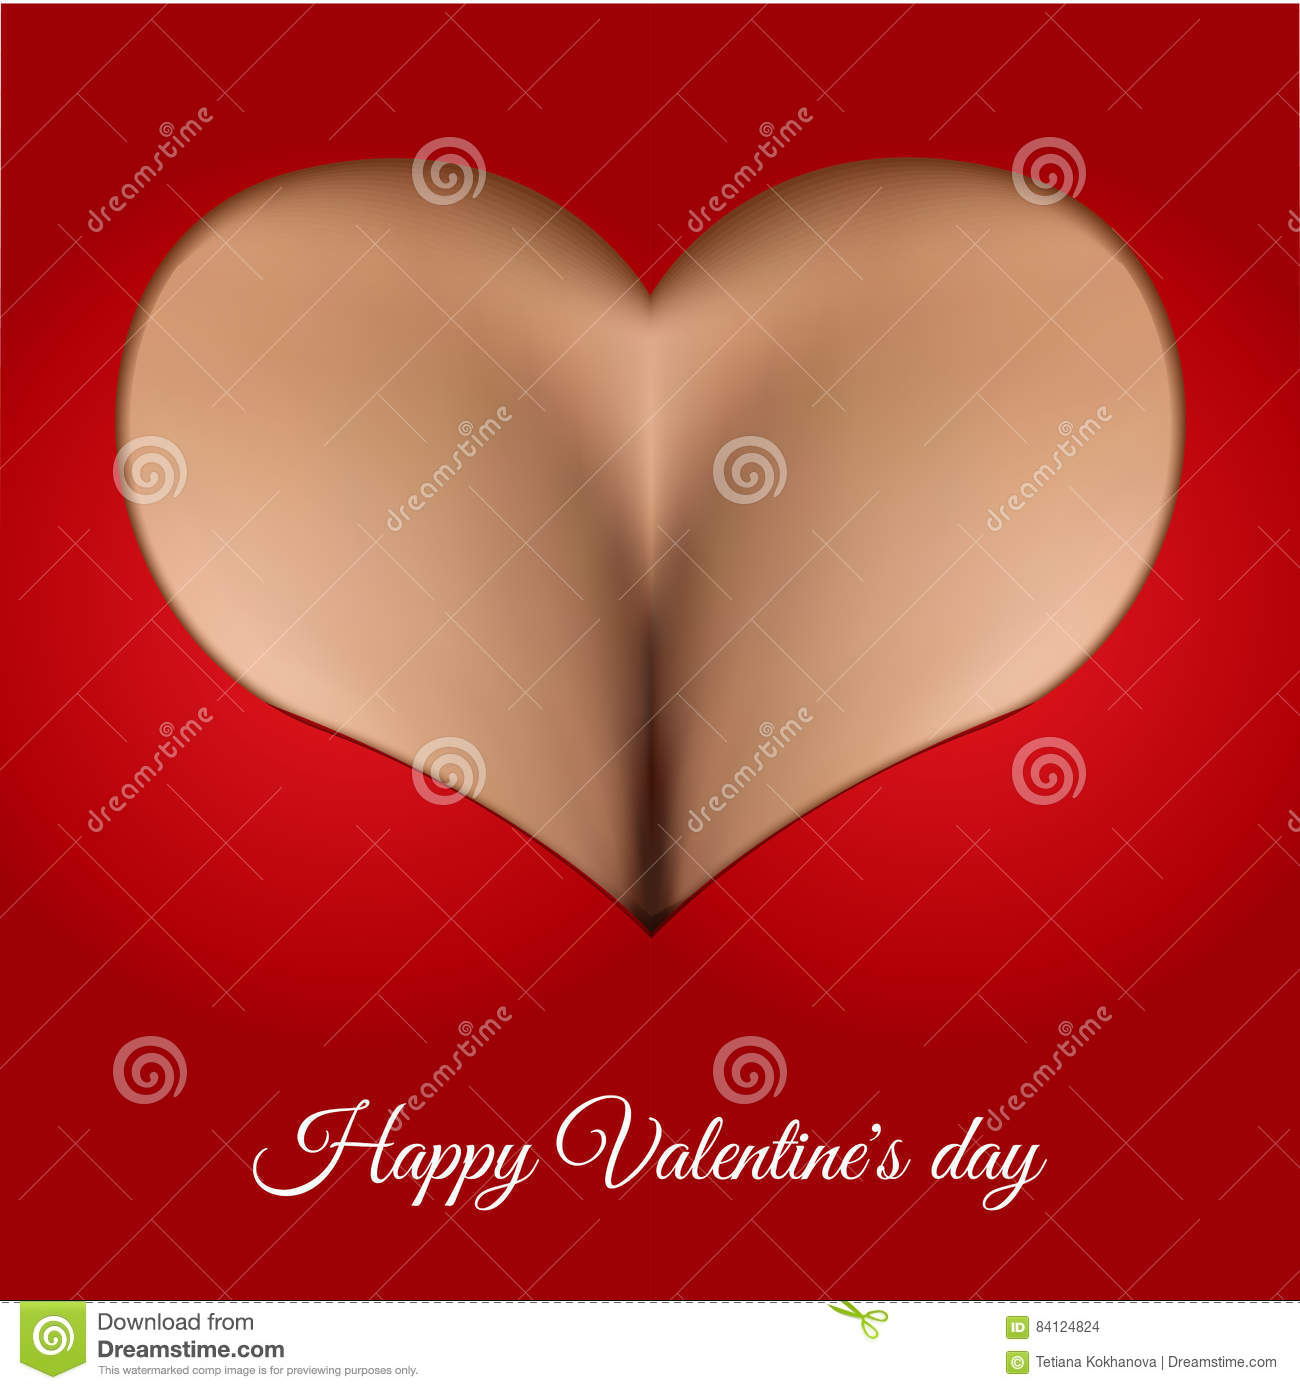 Greeting Card Valentine S Day Realistic Woman Breast Stock Vector